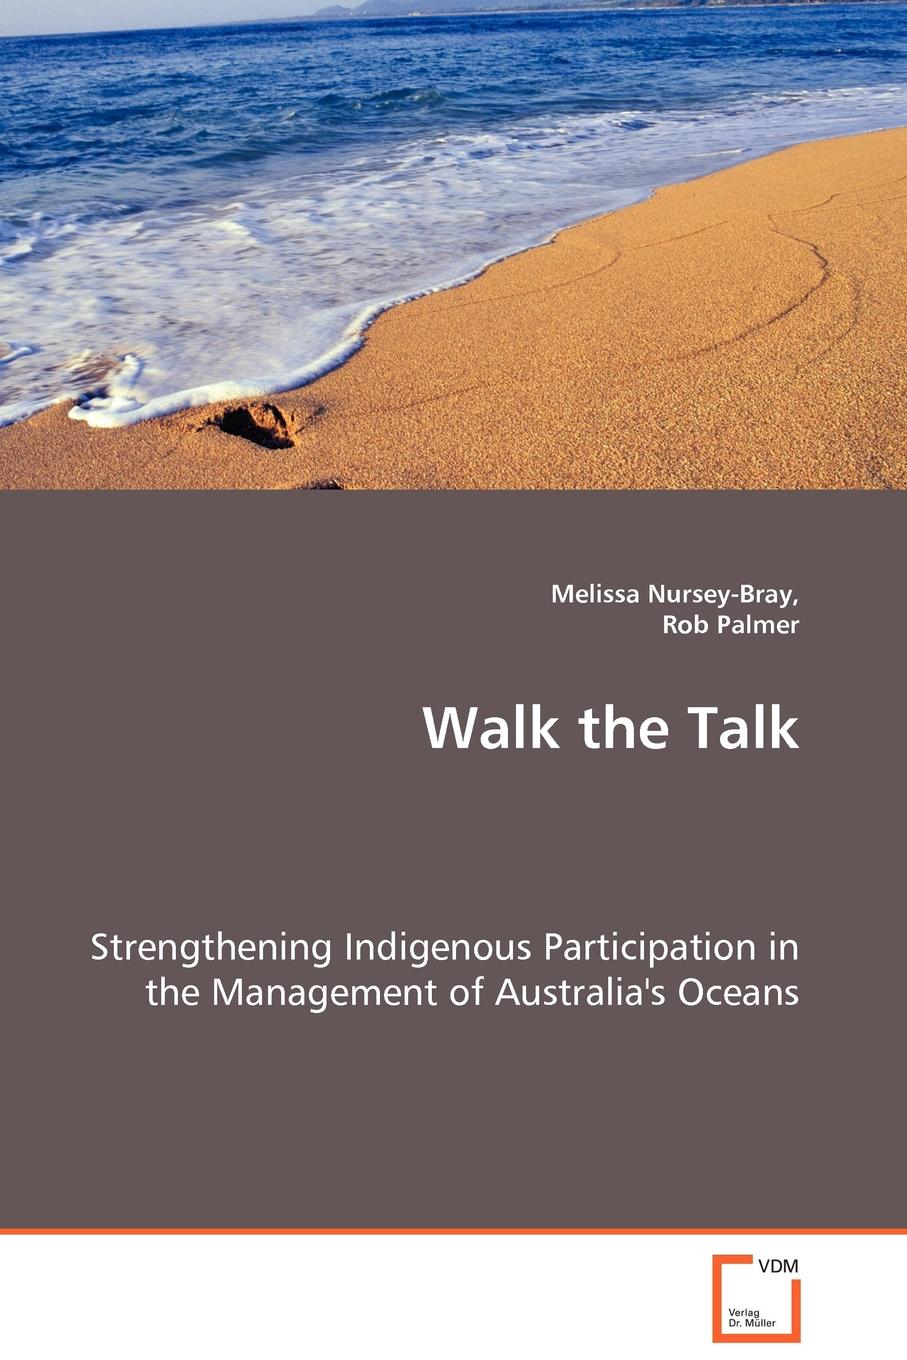 Melissa Nursey-Bray, Rob Palmer Walk the Talk - Strengthening Indigenous Participation in the Management of Australia.s Oceans indigenous voices